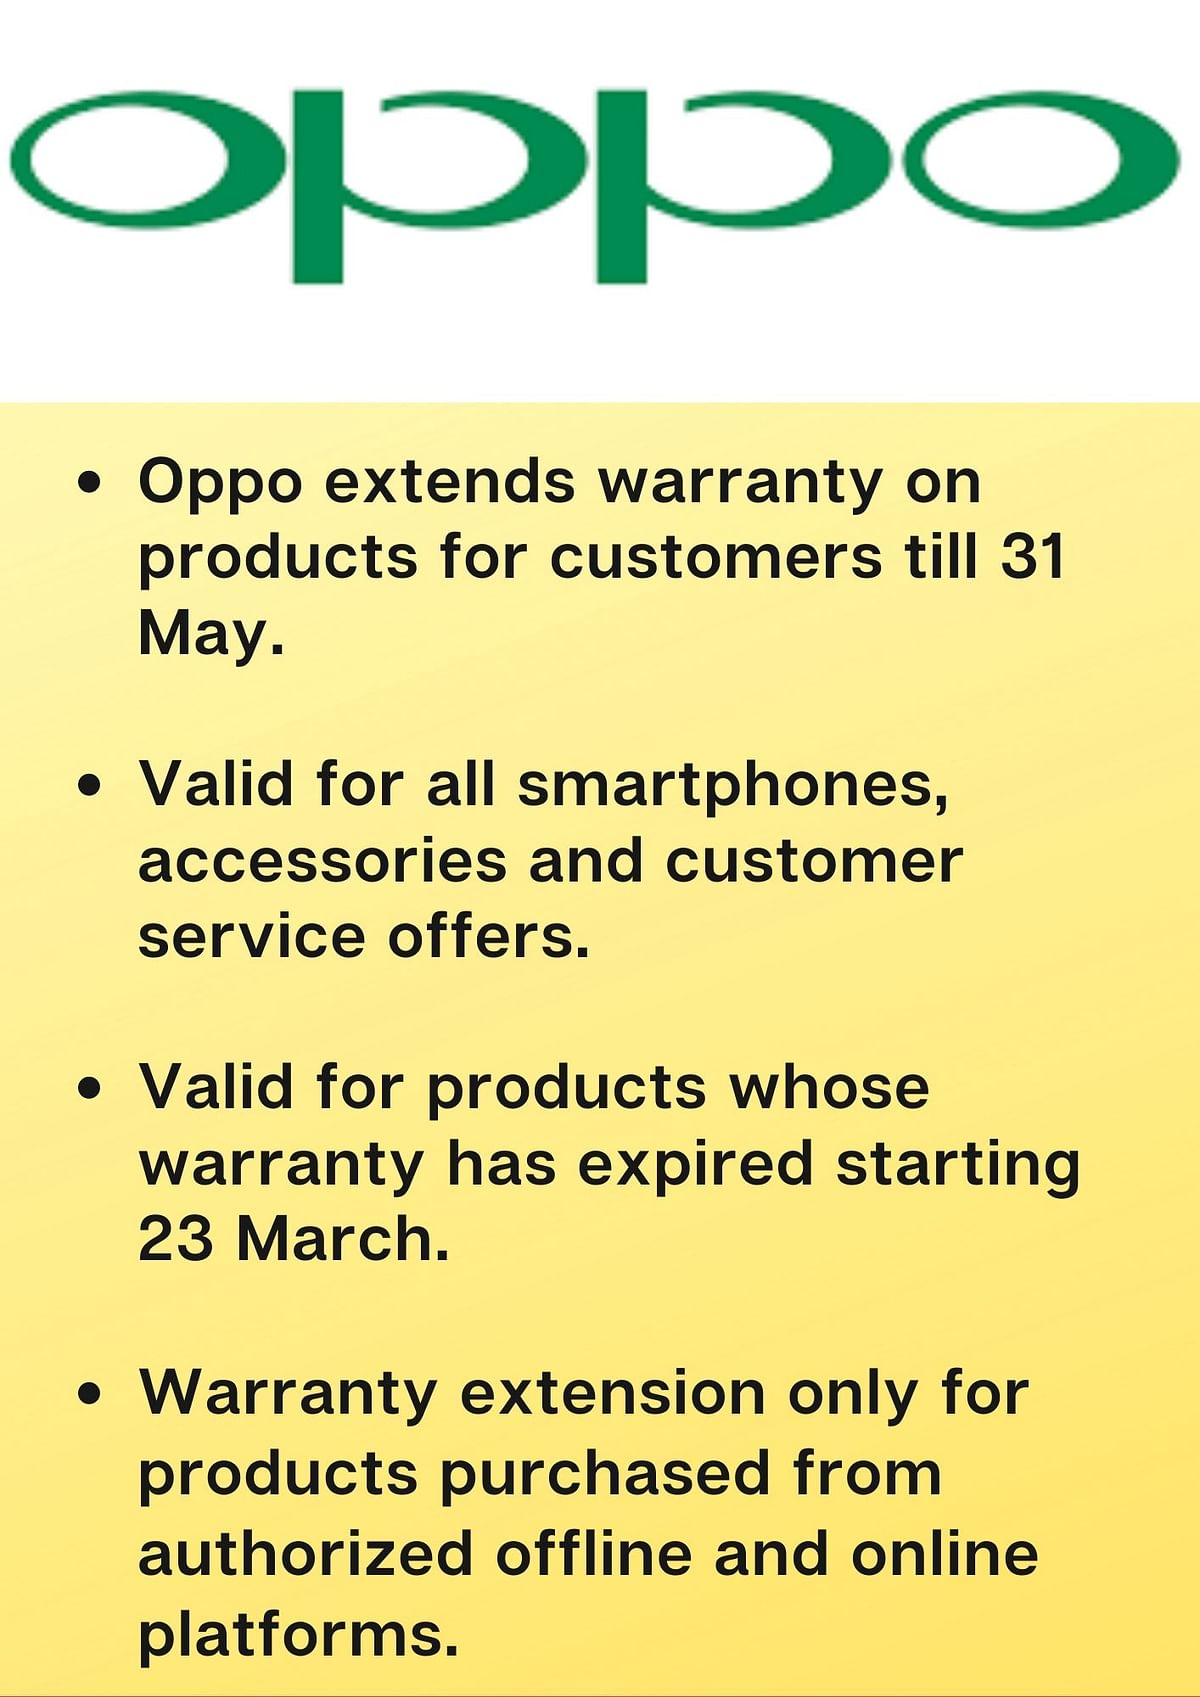 The extended warranty offer is across all Oppo products.